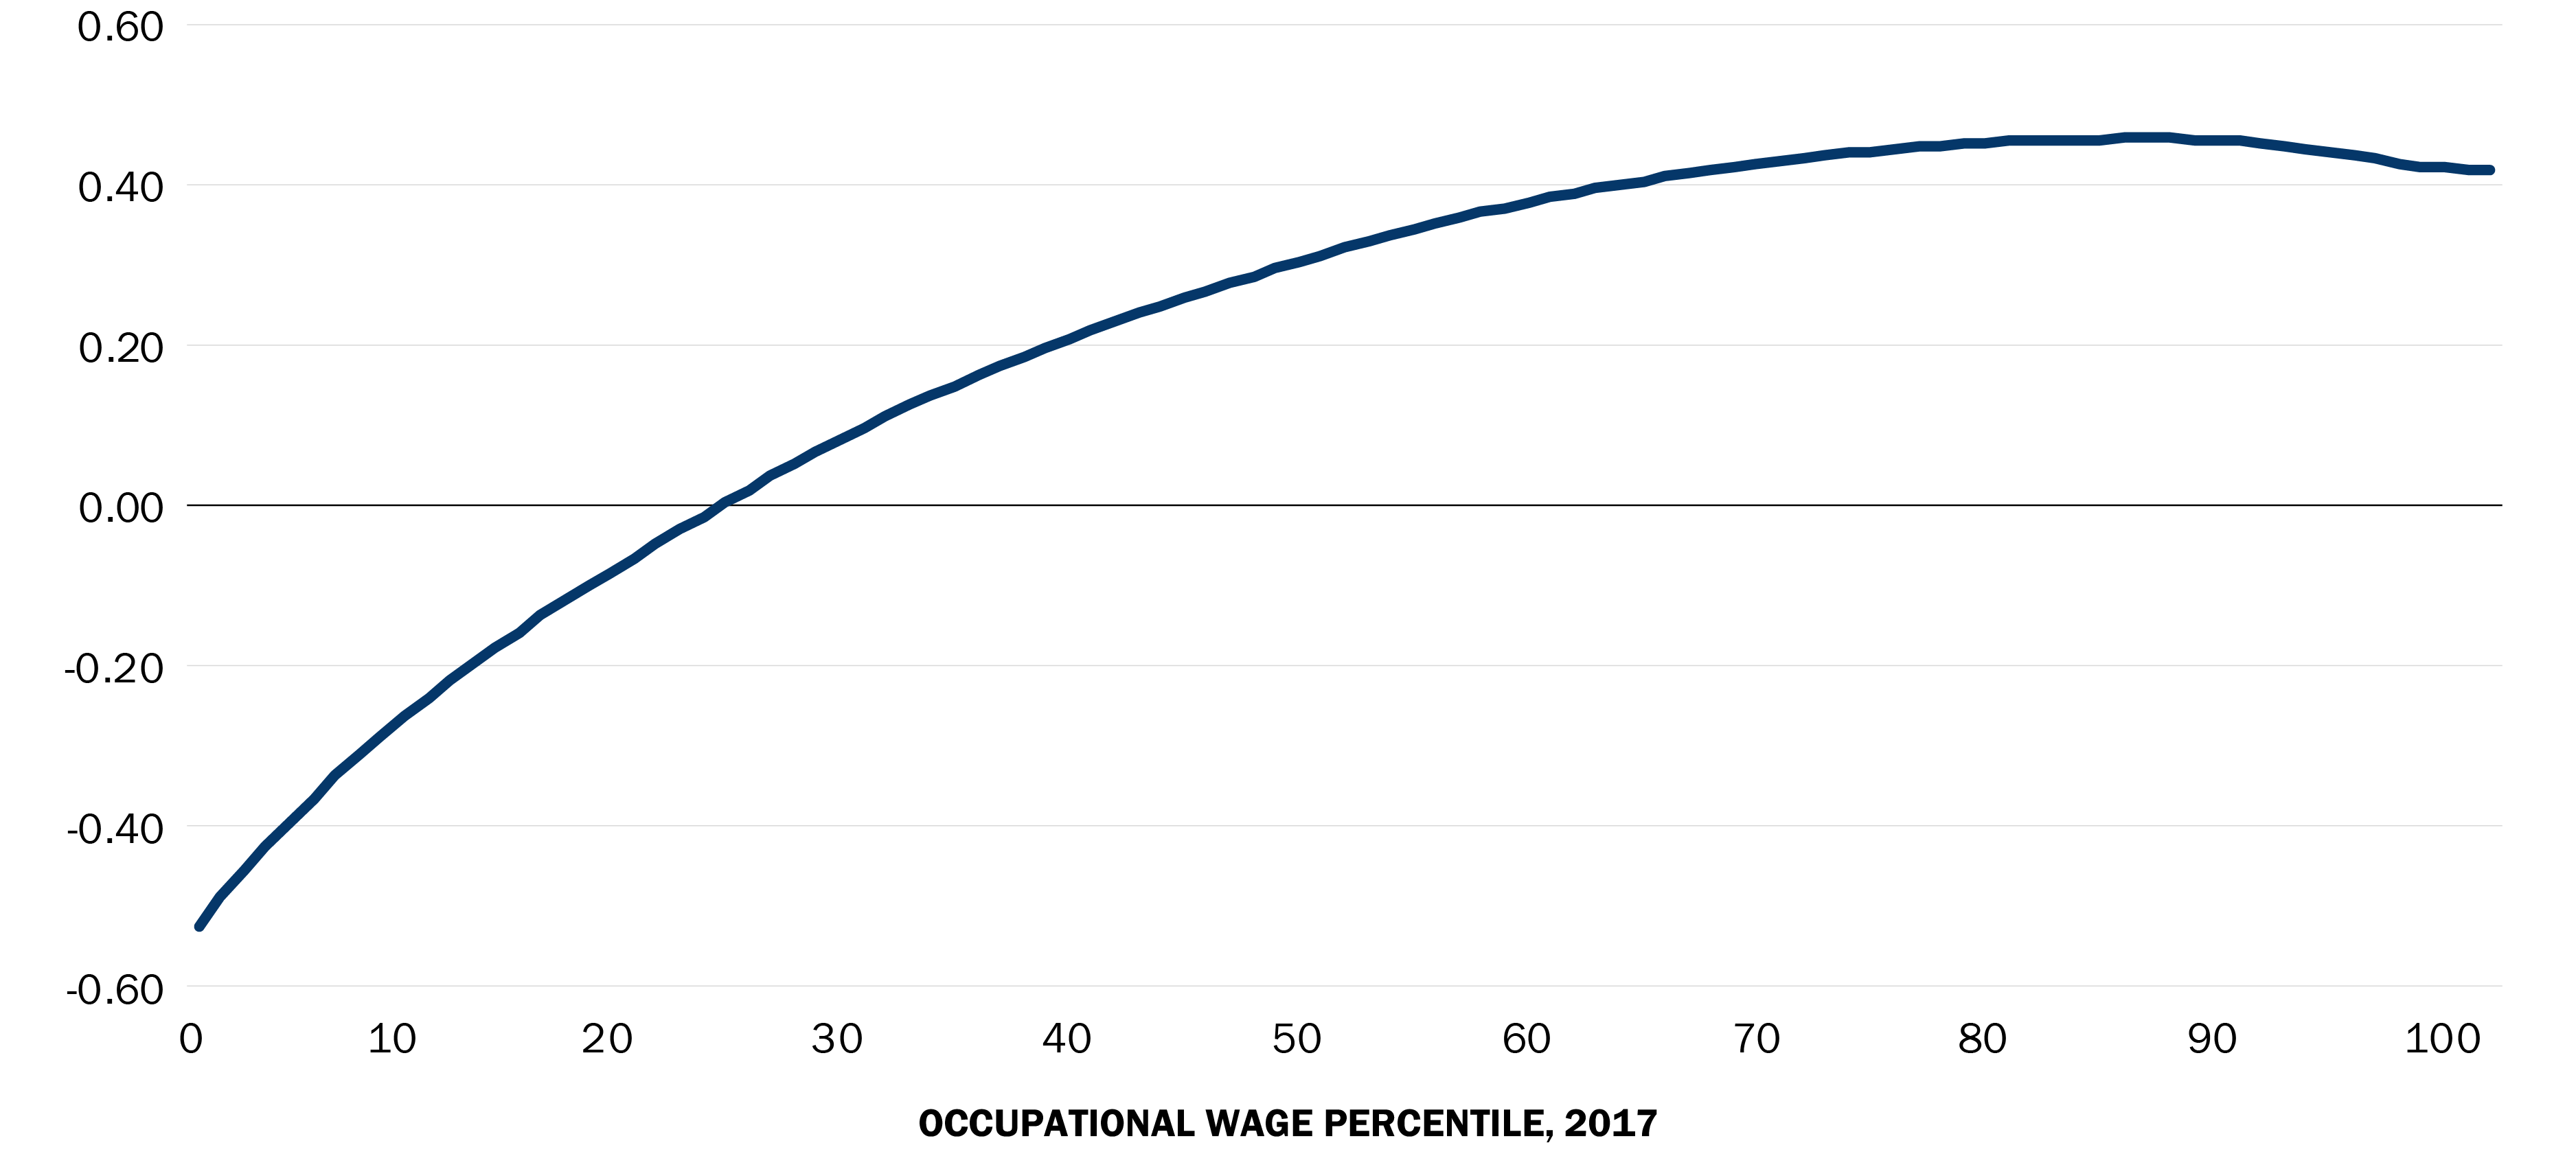 AI exposure for all occupational wage percentiles